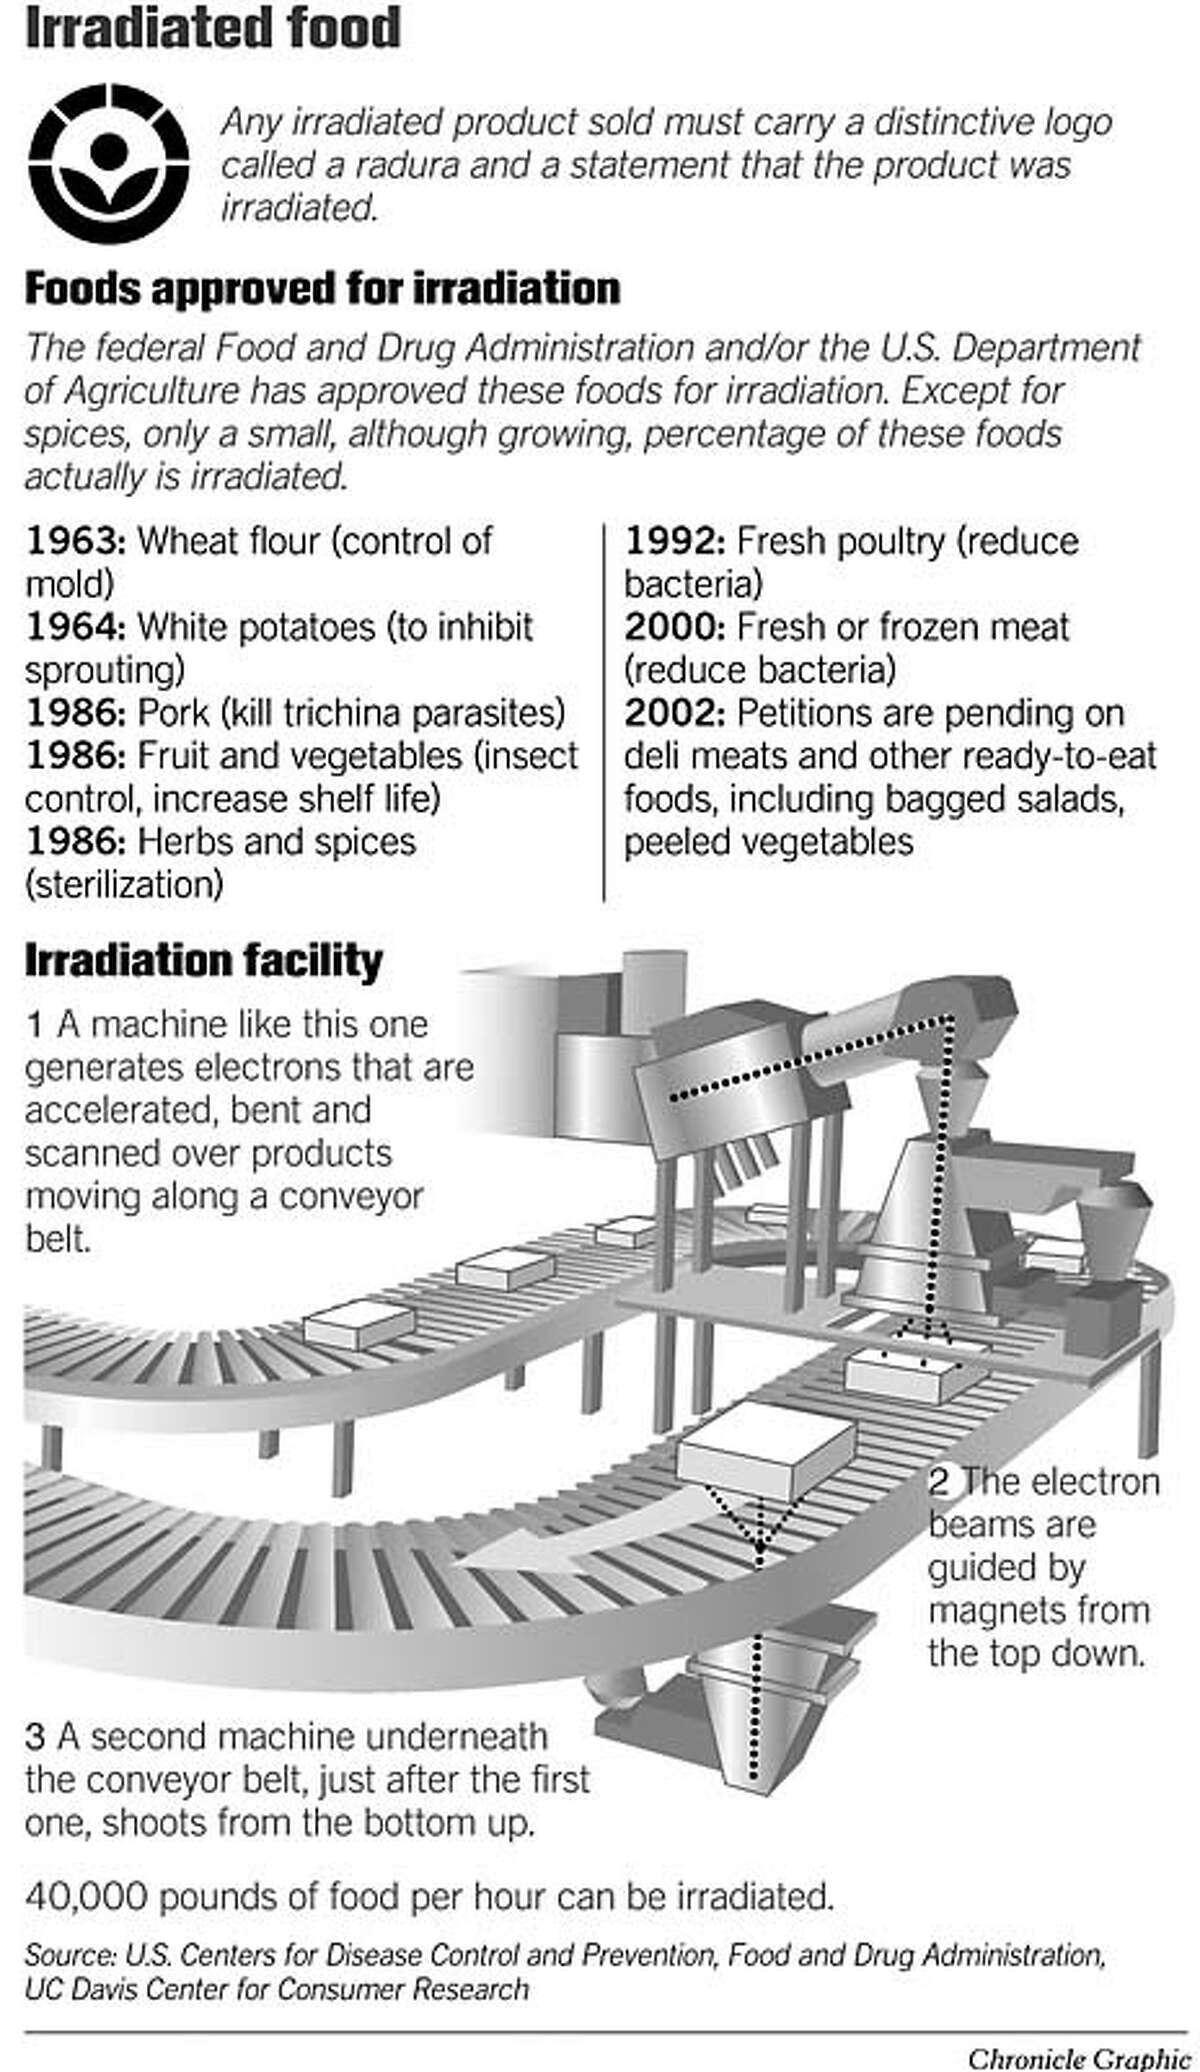 Irradiated Food. Chronicle Graphic